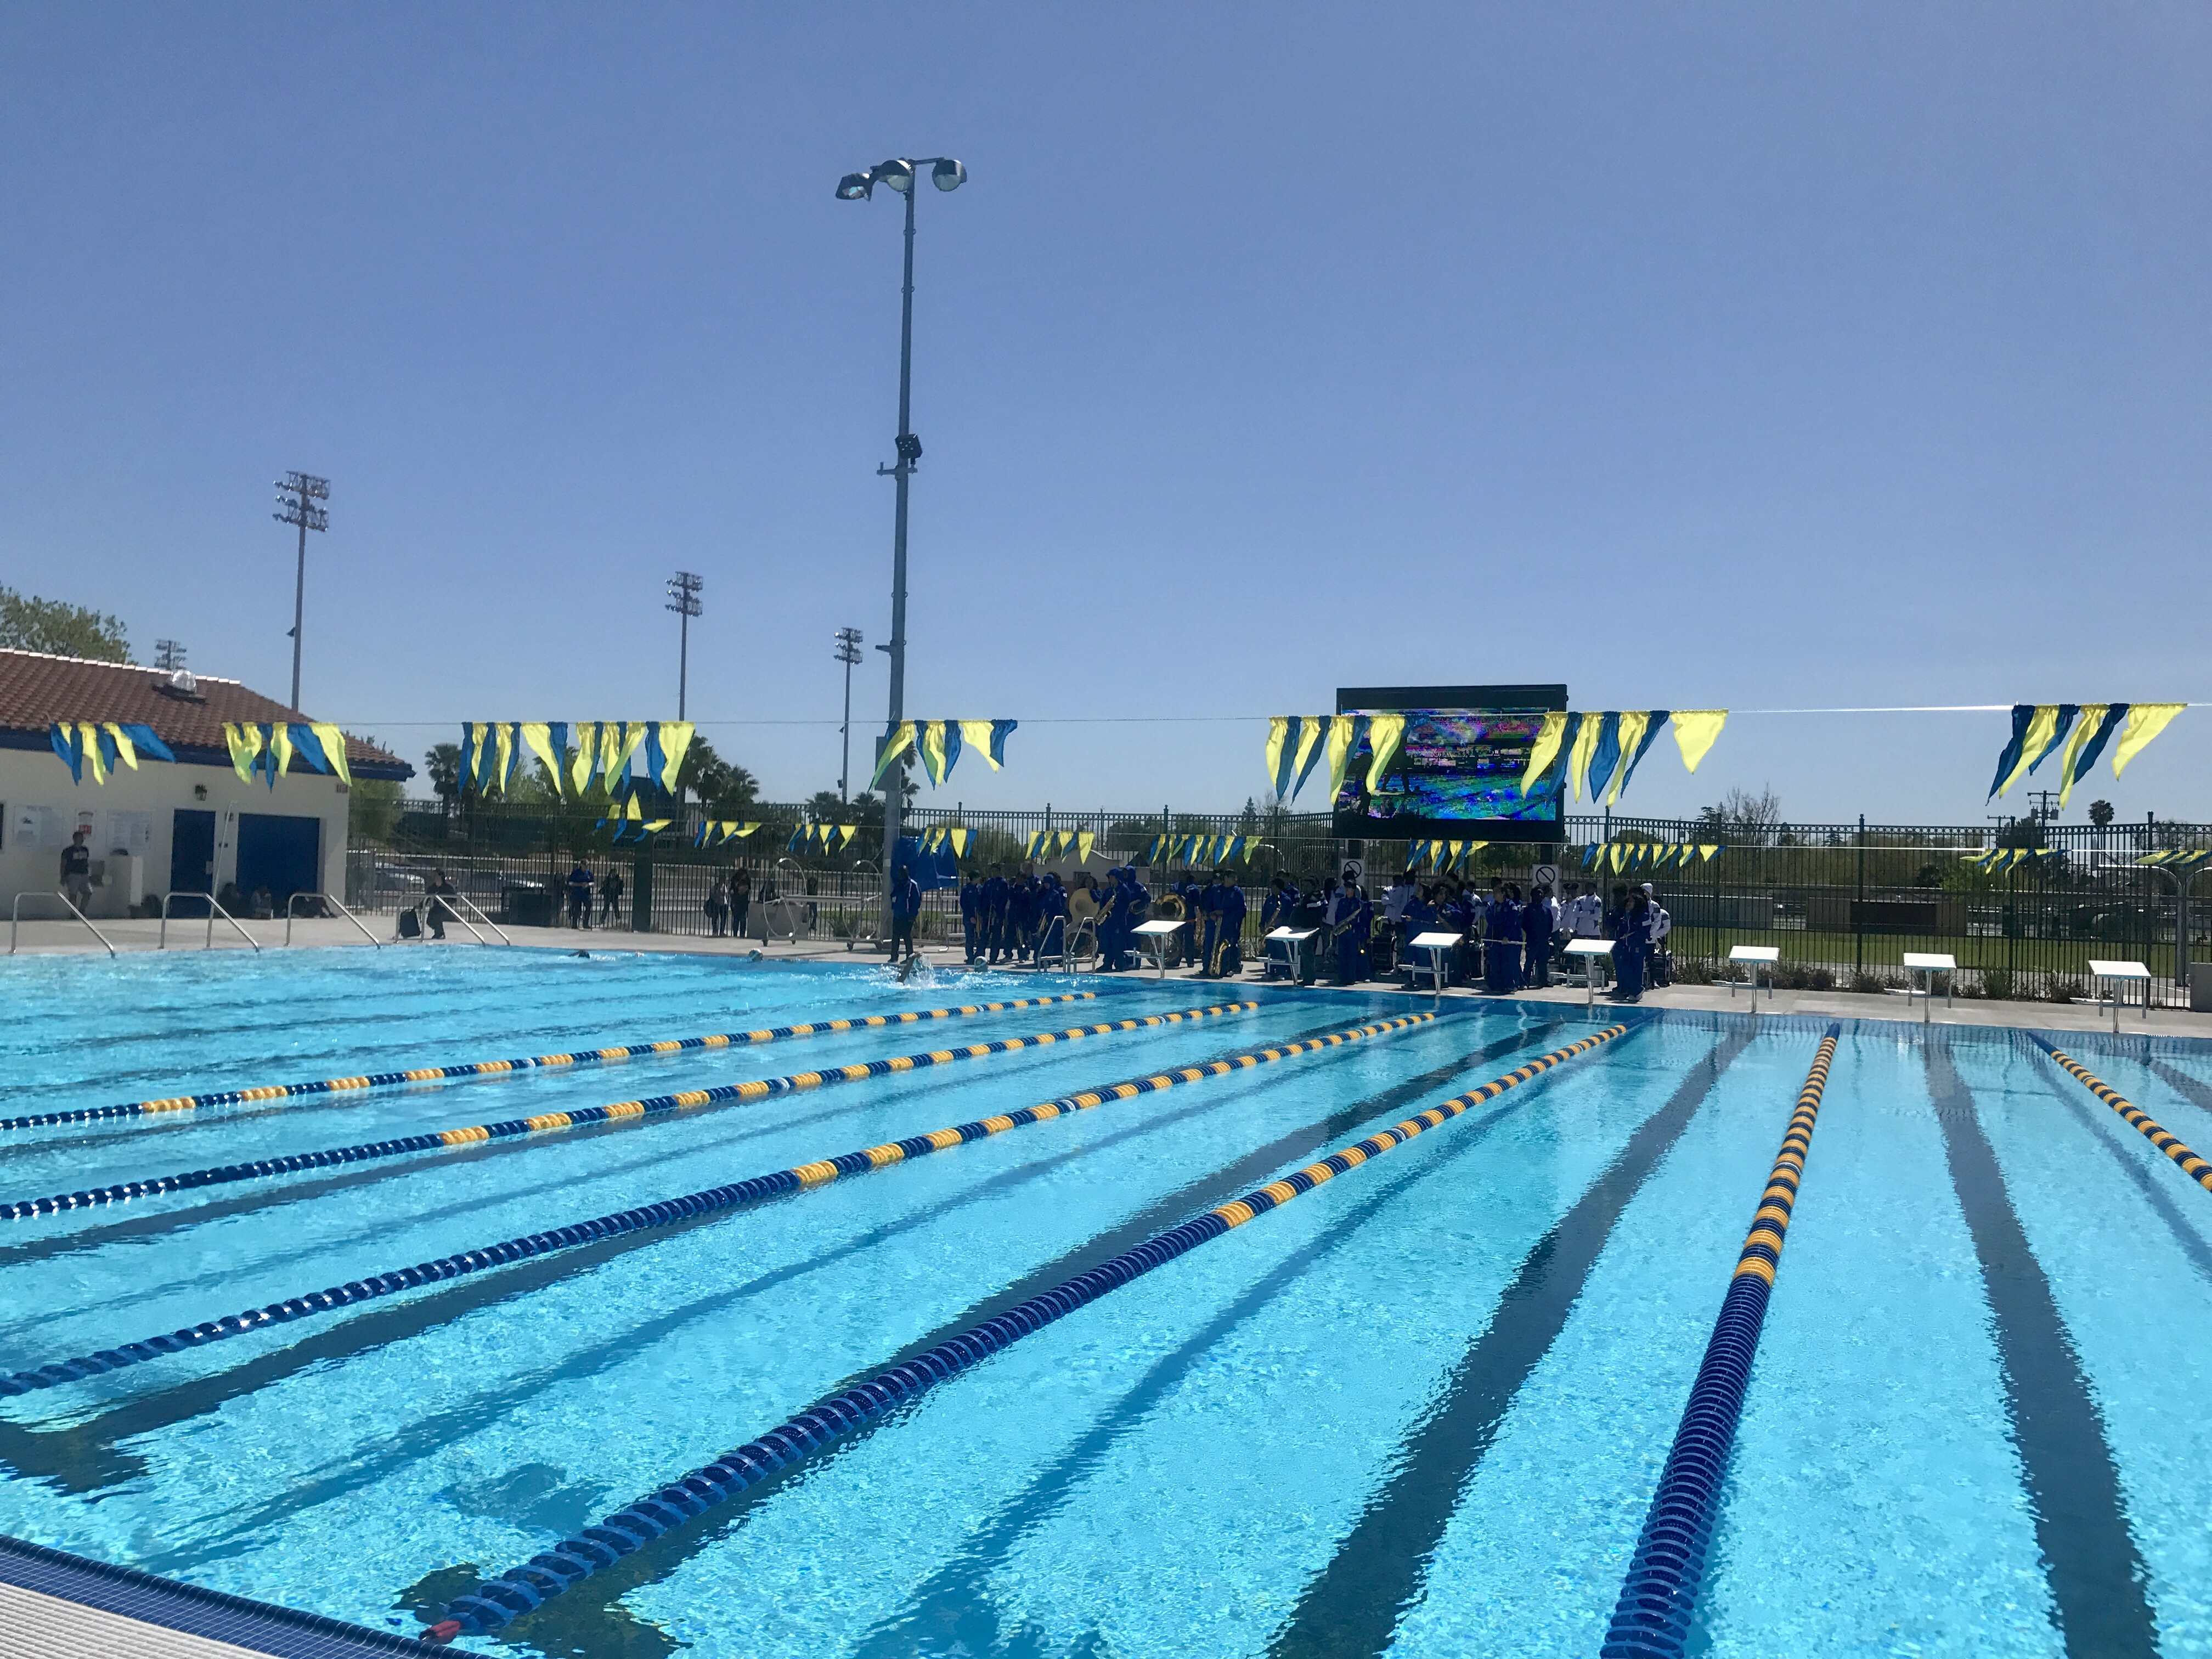 Grant high pool opening for public swim north sac beat - Whitefish bay pool open swim hours ...